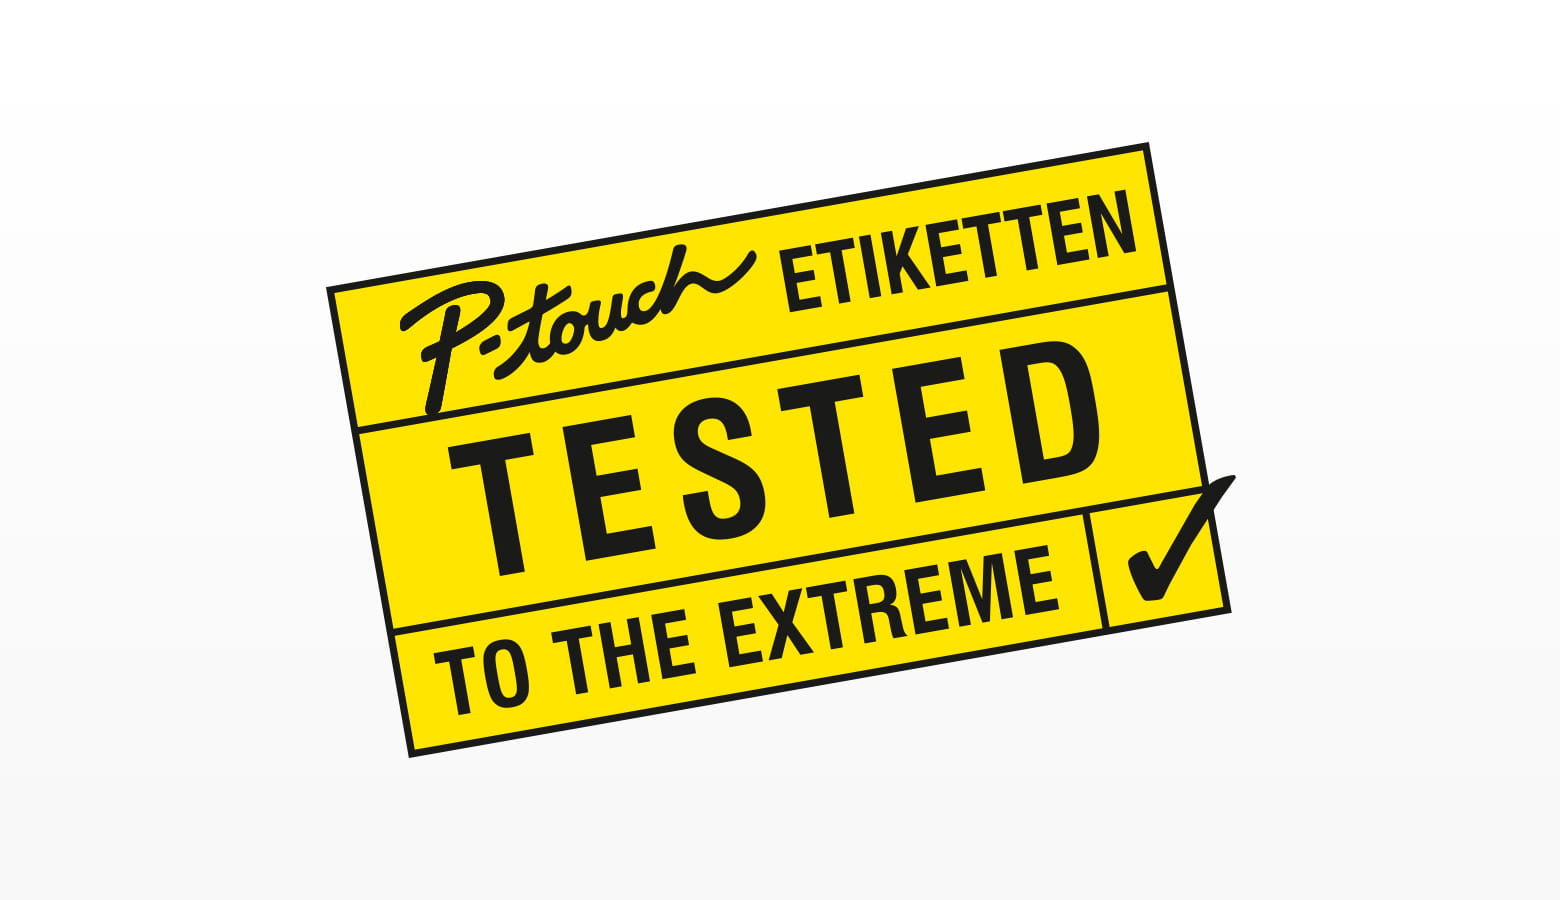 P-touch Etiketen – Tested to the Extreme